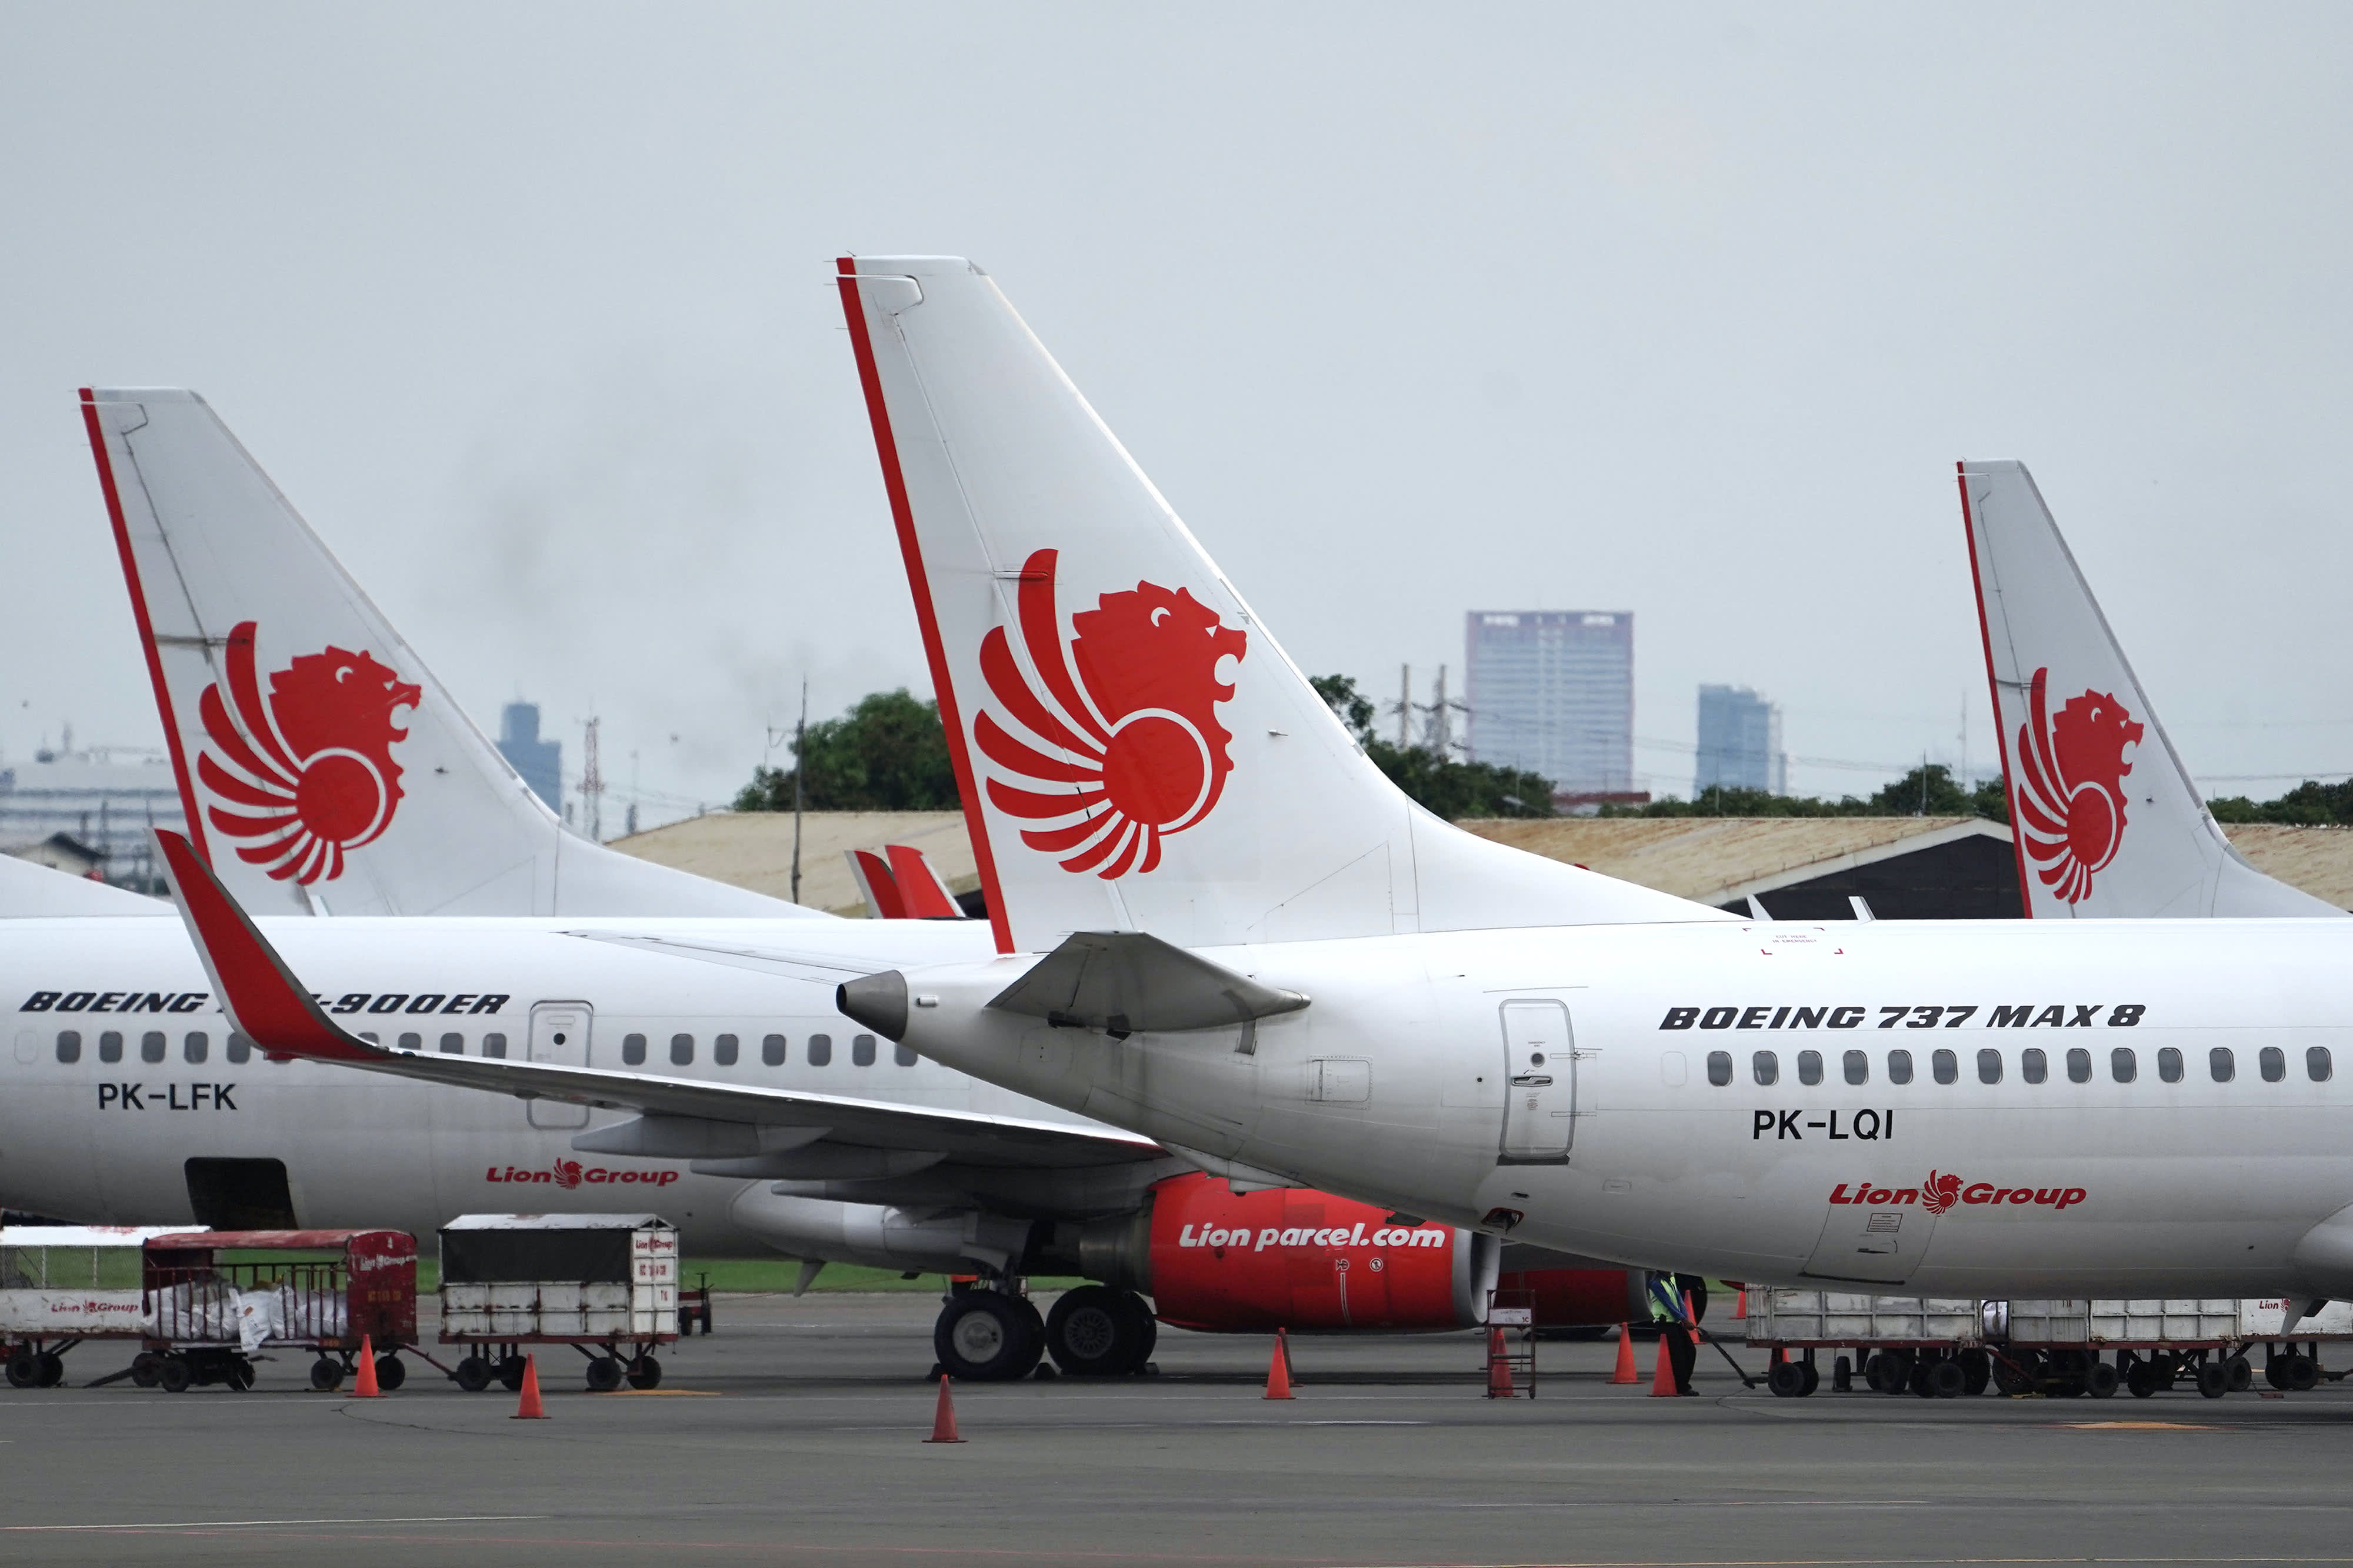 A day before it crashed, Lion Air's Boeing plane was reportedly saved by an off-duty pilot